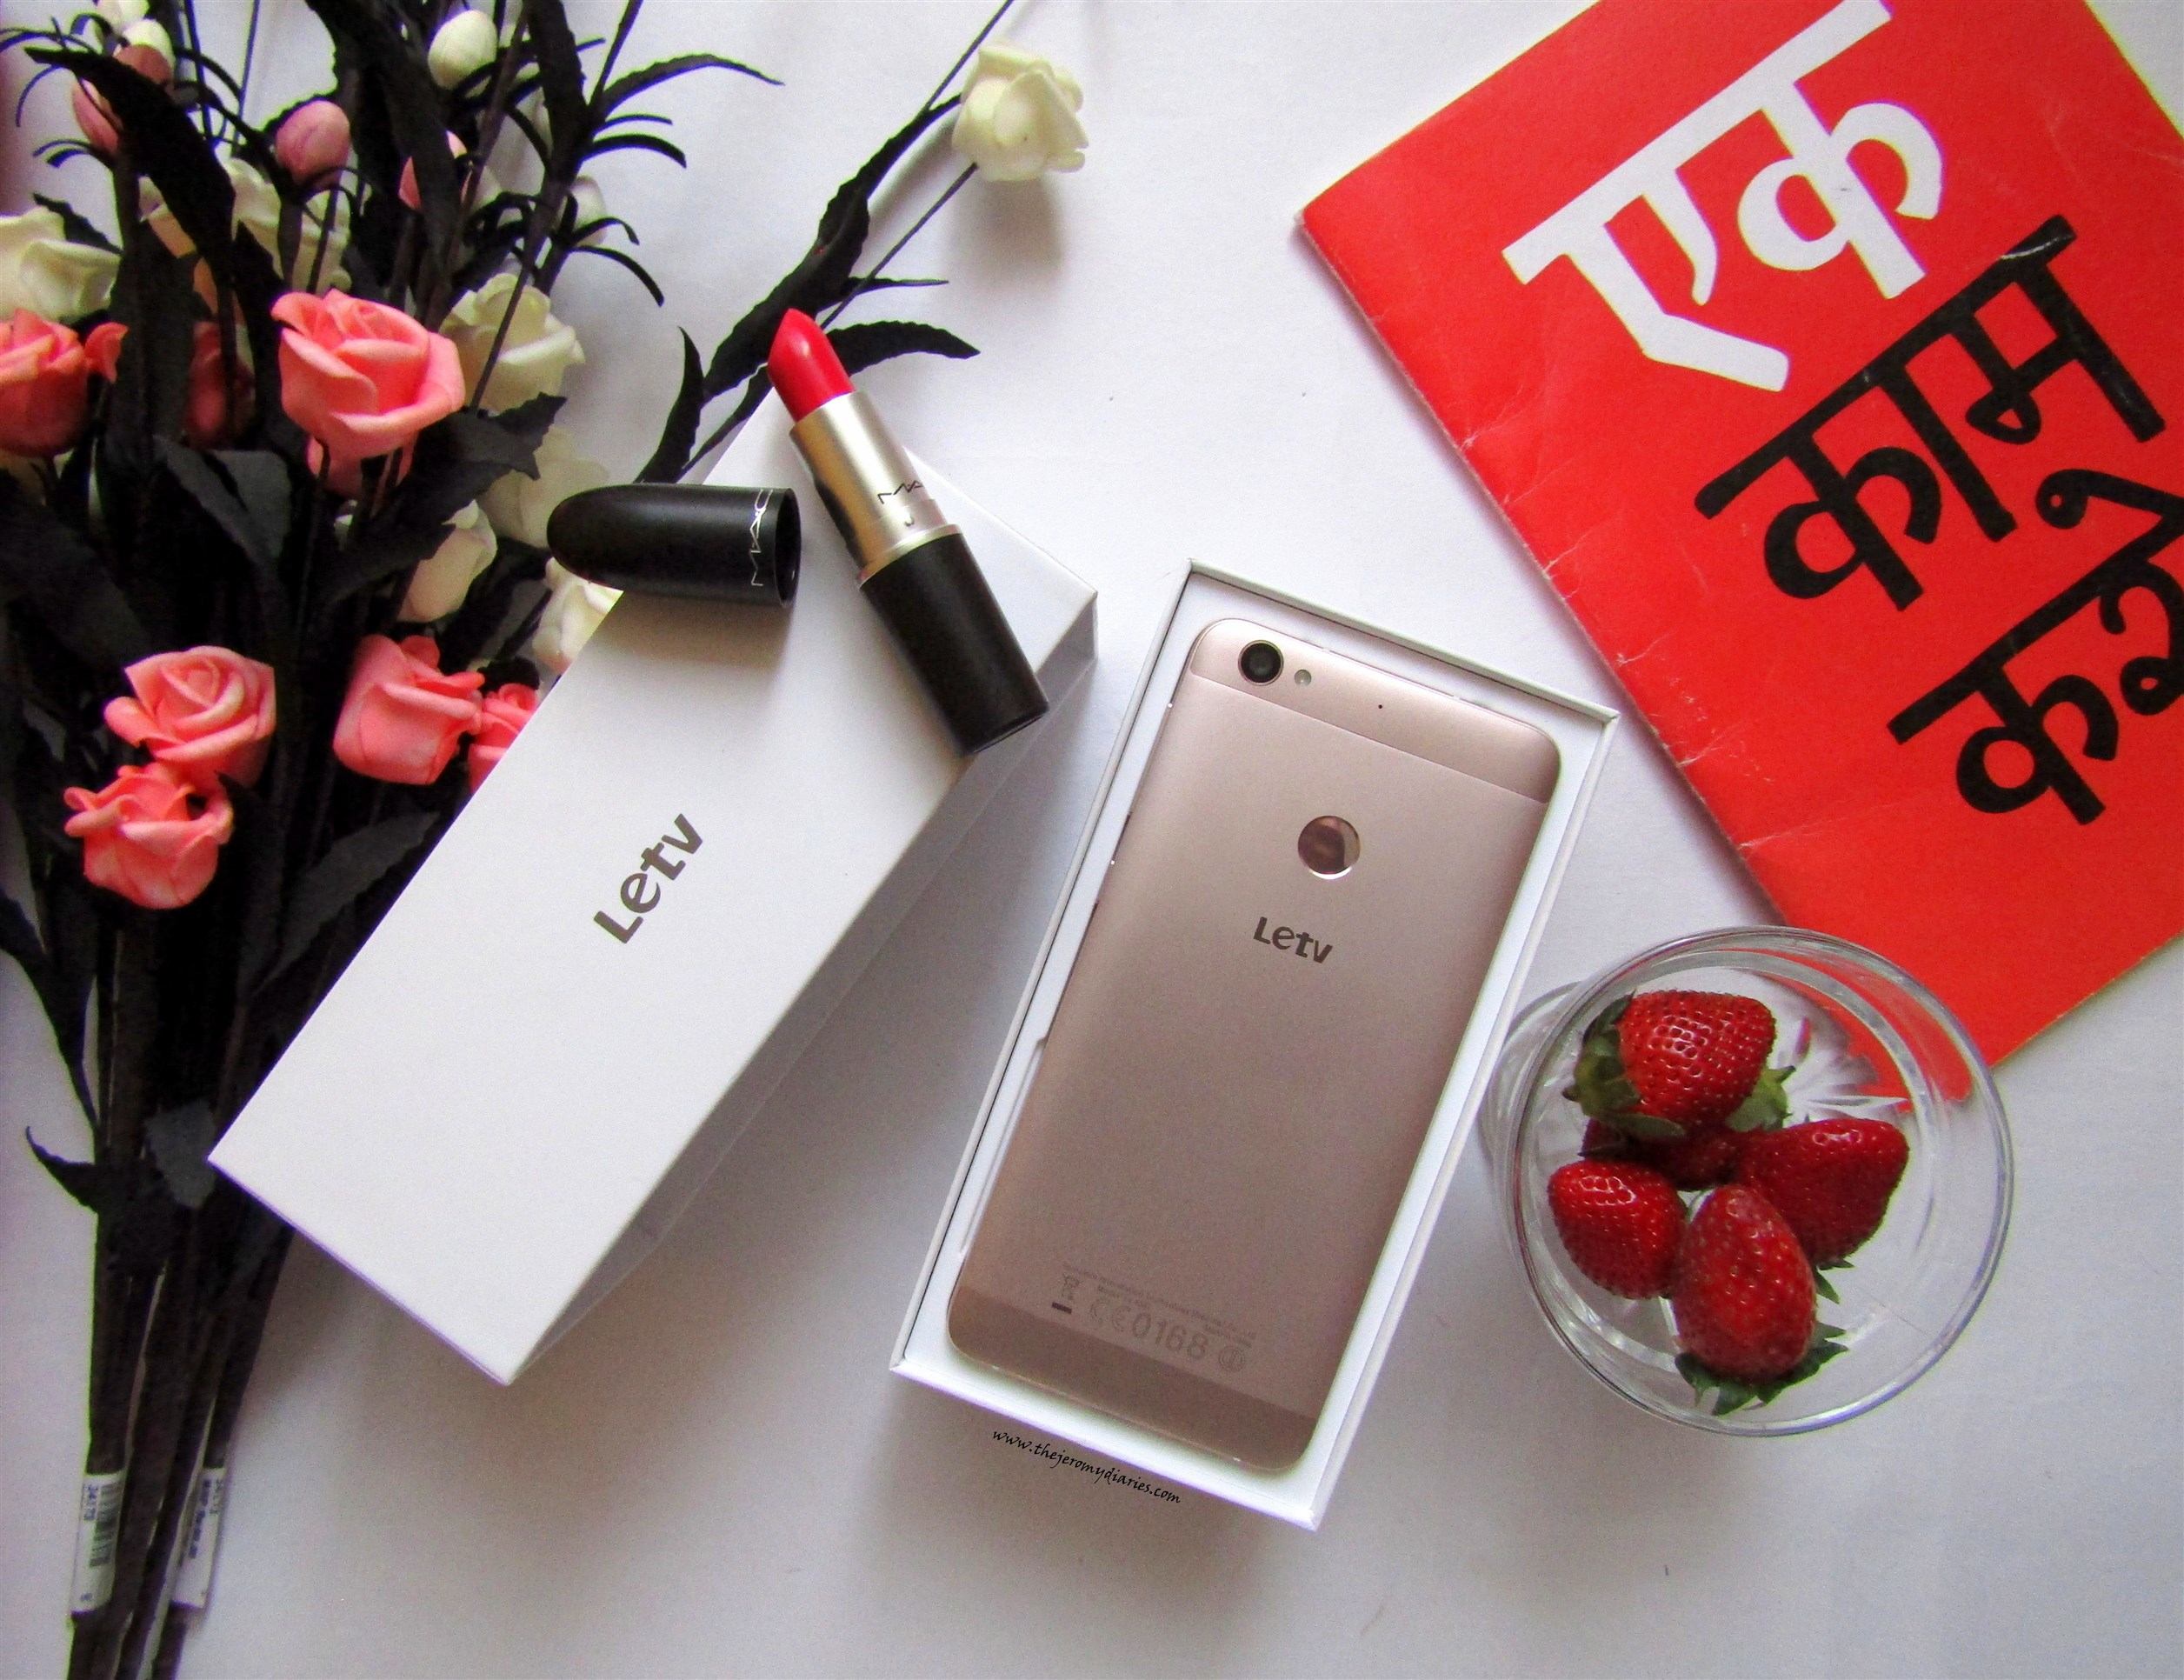 LeEco Le 1s rose gold in colour the jeromy diaries (2512 x 1932)